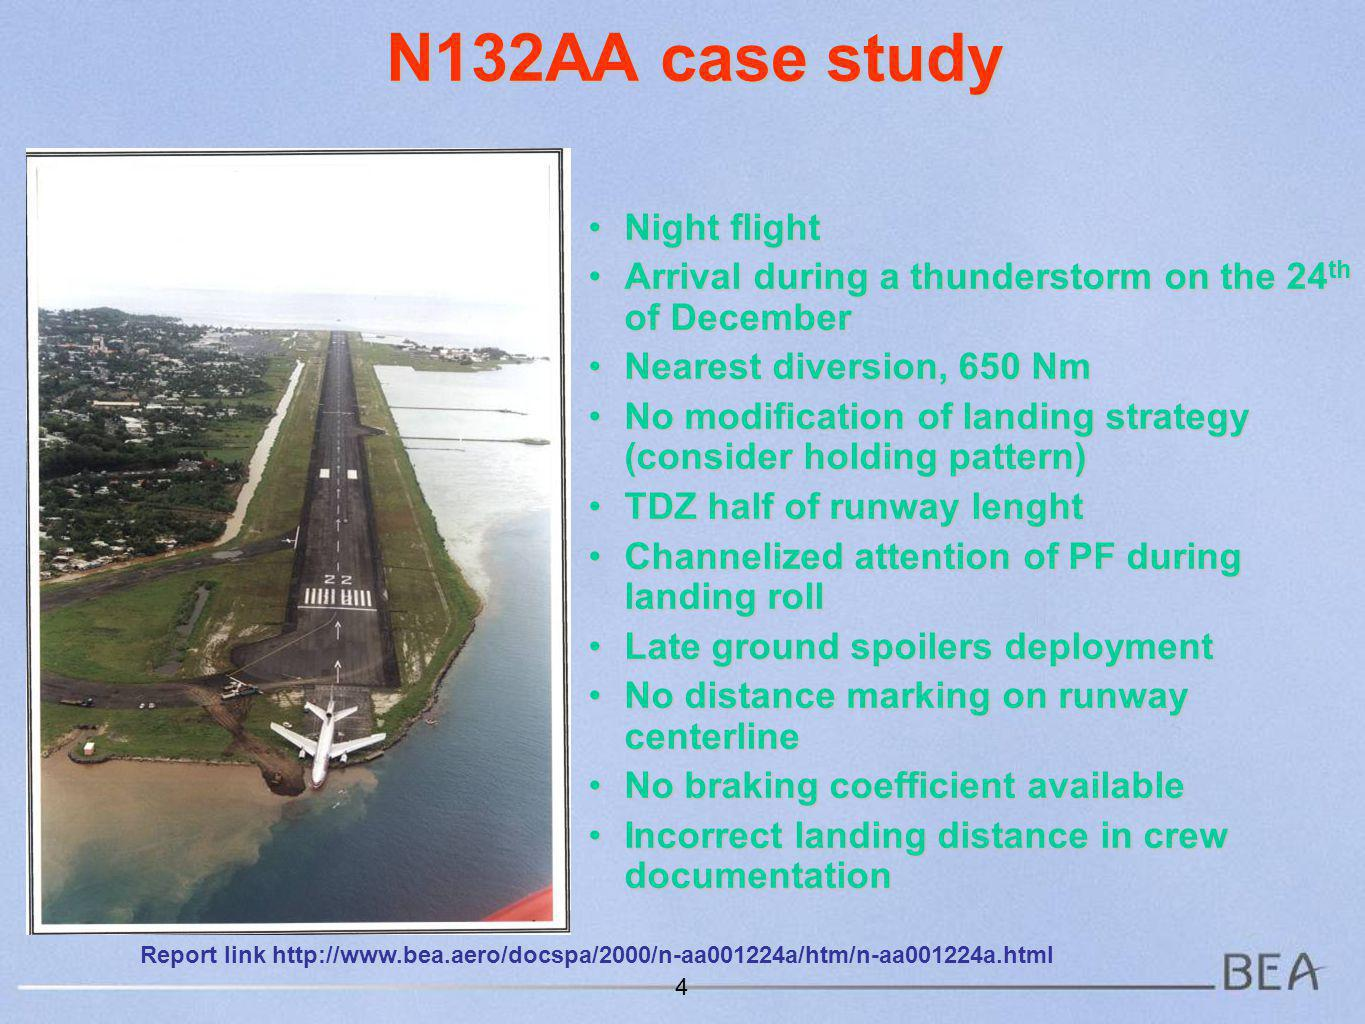 N132AA case study Night flightNight flight Arrival during a thunderstorm on the 24 th of DecemberArrival during a thunderstorm on the 24 th of December Nearest diversion, 650 NmNearest diversion, 650 Nm No modification of landing strategy (consider holding pattern)No modification of landing strategy (consider holding pattern) TDZ half of runway lenghtTDZ half of runway lenght Channelized attention of PF during landing rollChannelized attention of PF during landing roll Late ground spoilers deploymentLate ground spoilers deployment No distance marking on runway centerlineNo distance marking on runway centerline No braking coefficient availableNo braking coefficient available Incorrect landing distance in crew documentationIncorrect landing distance in crew documentation 4 Report link http://www.bea.aero/docspa/2000/n-aa001224a/htm/n-aa001224a.html